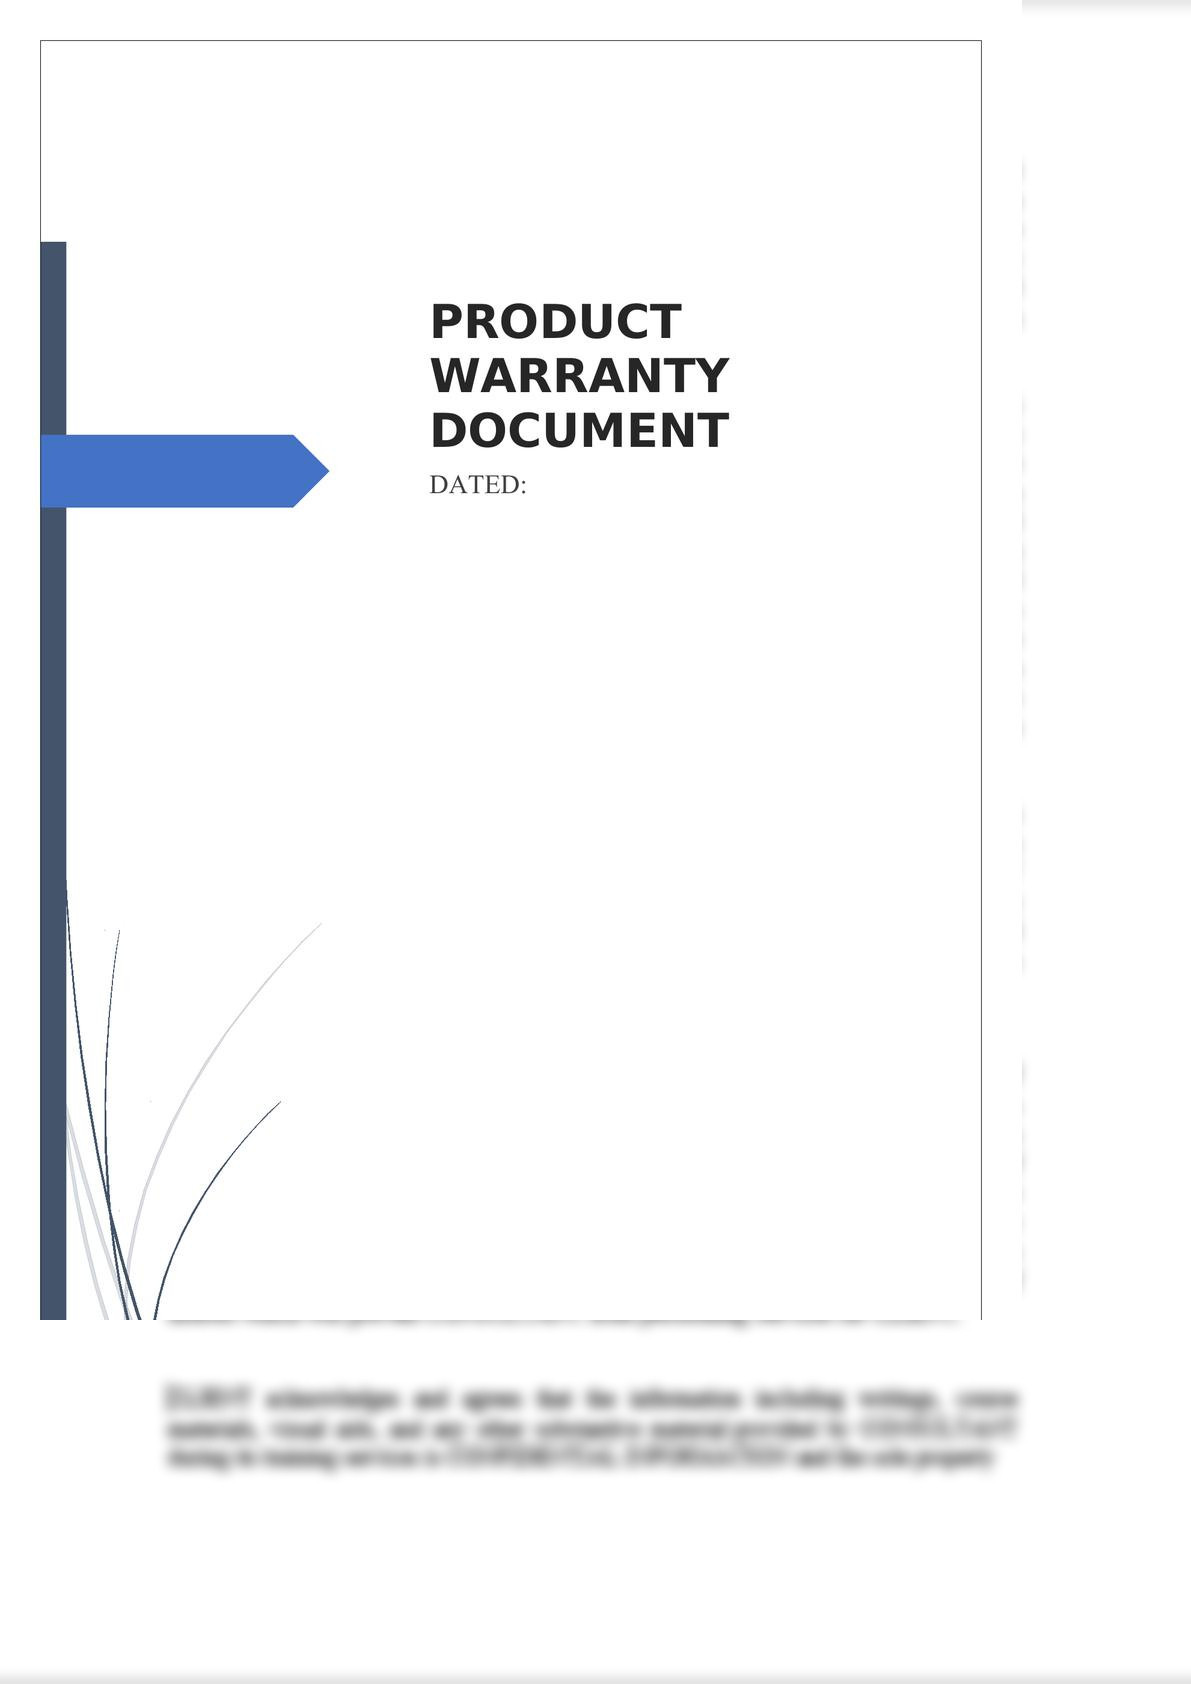 Product Warranty Document-0